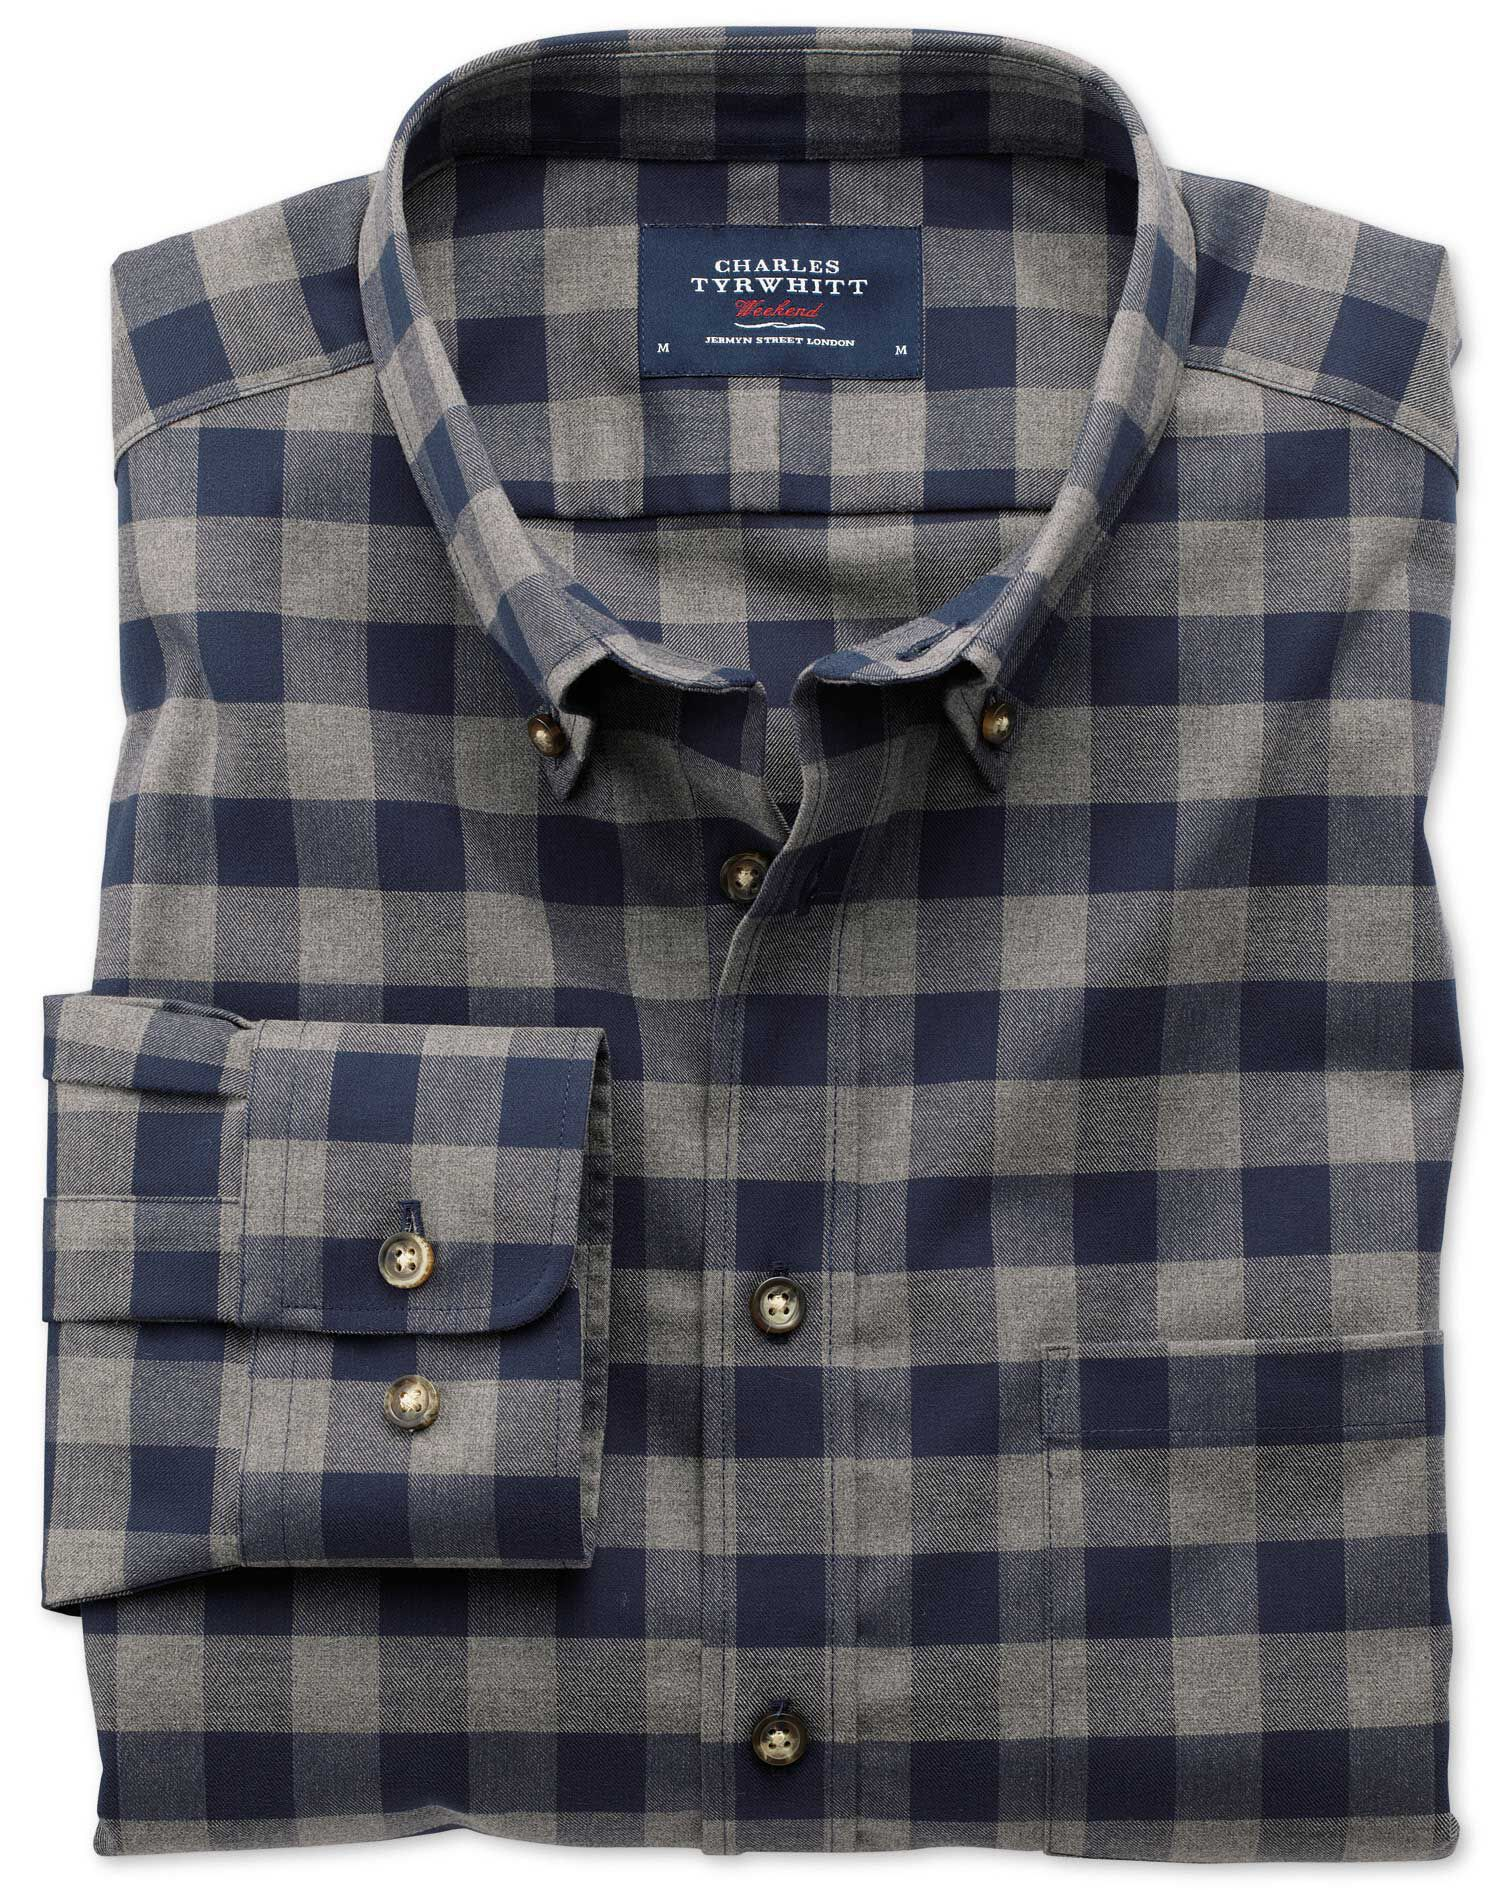 Extra Slim Fit Non-Iron Twill Navy and Grey Check Cotton Shirt Single Cuff Size XS by Charles Tyrwhi